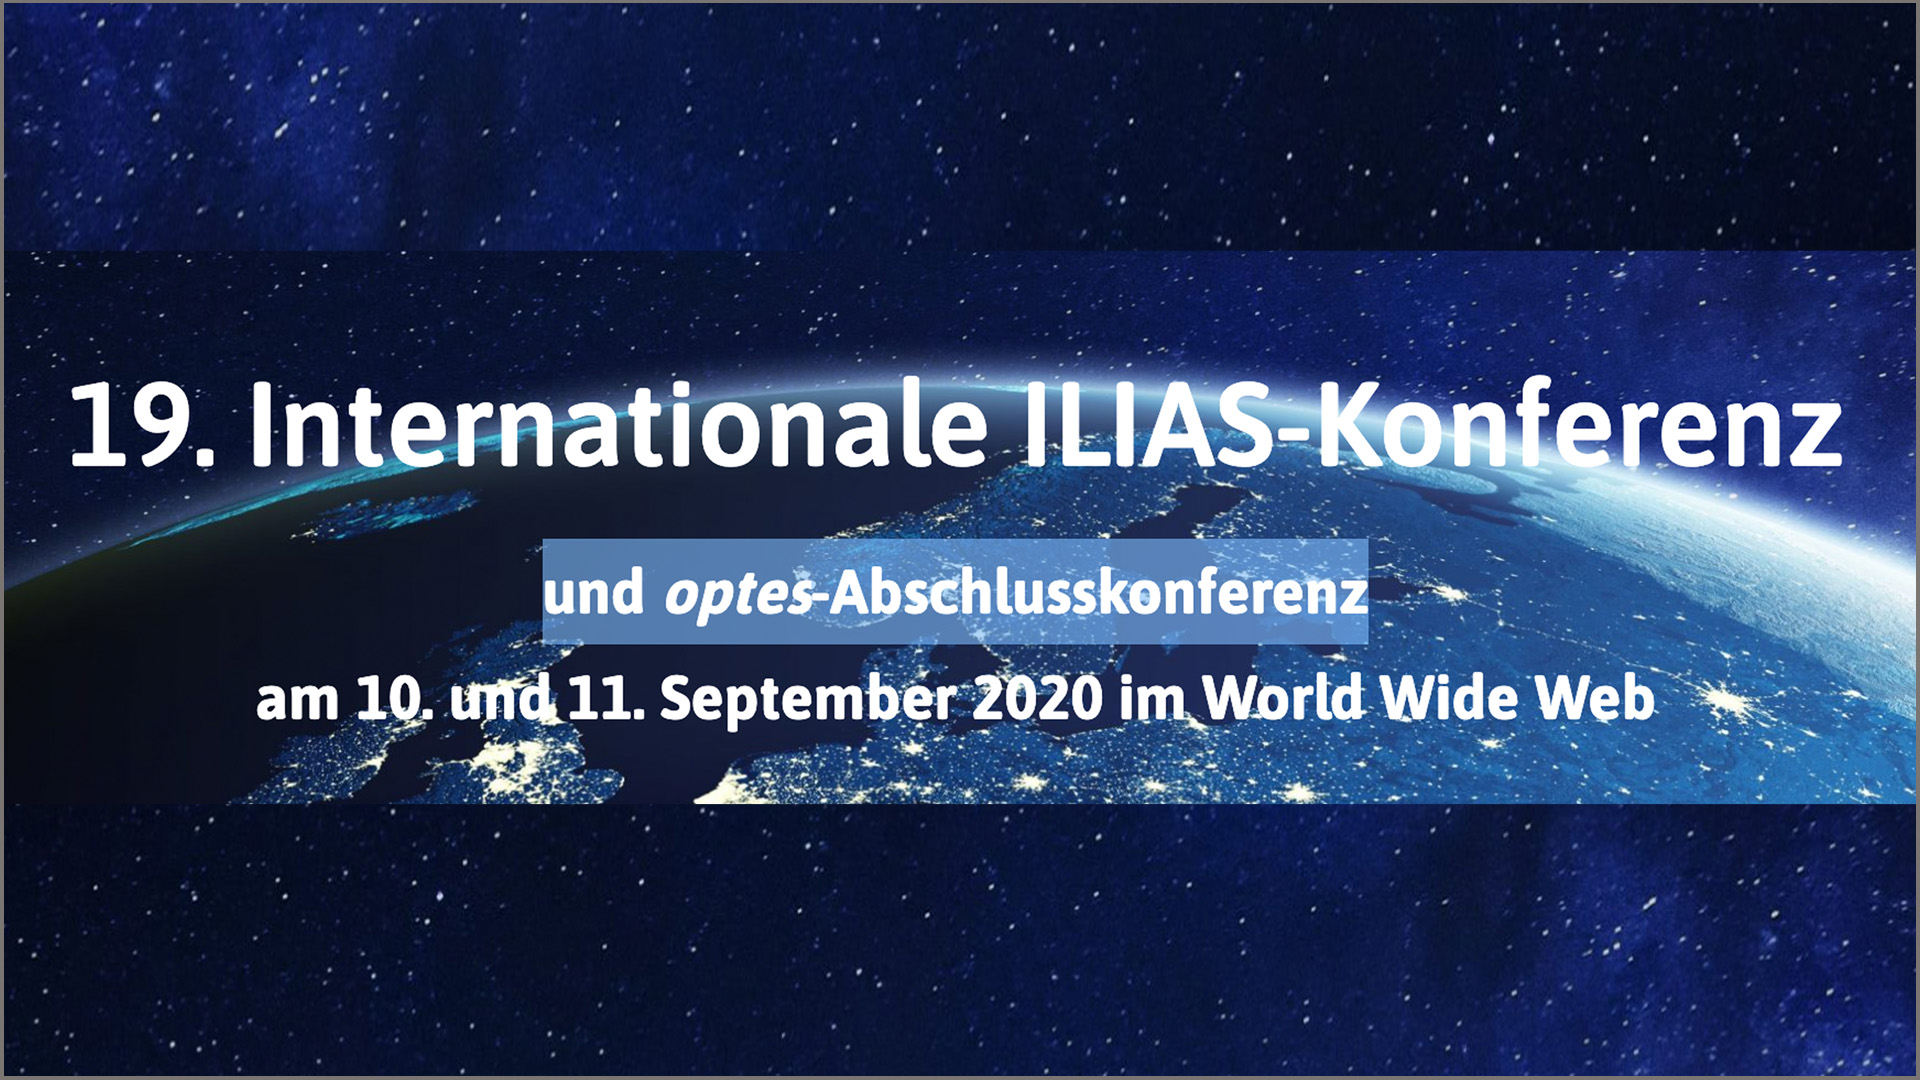 Internationale ILIAS Konferenz 2020